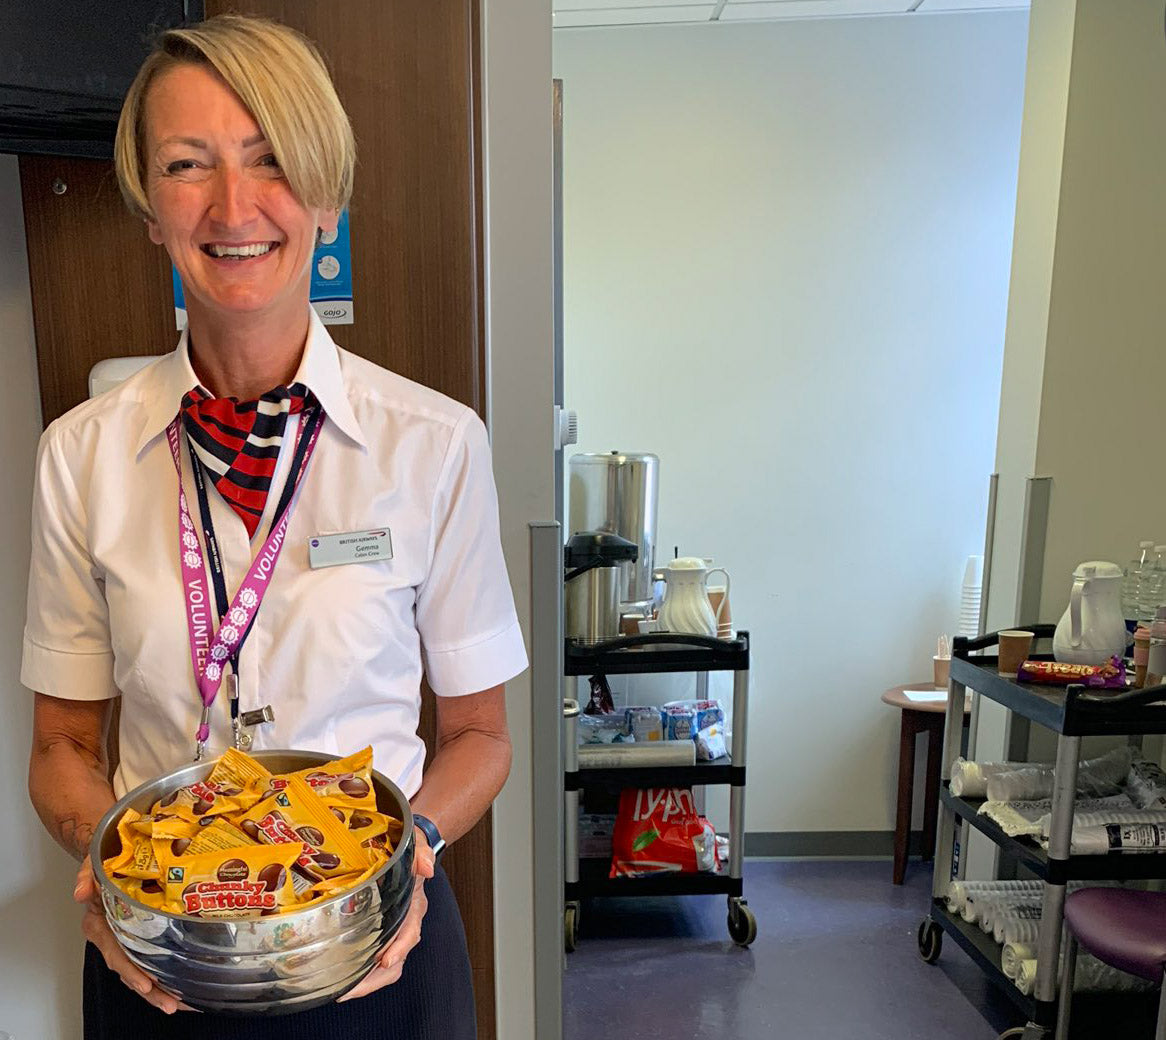 Choccy donations hit new heights